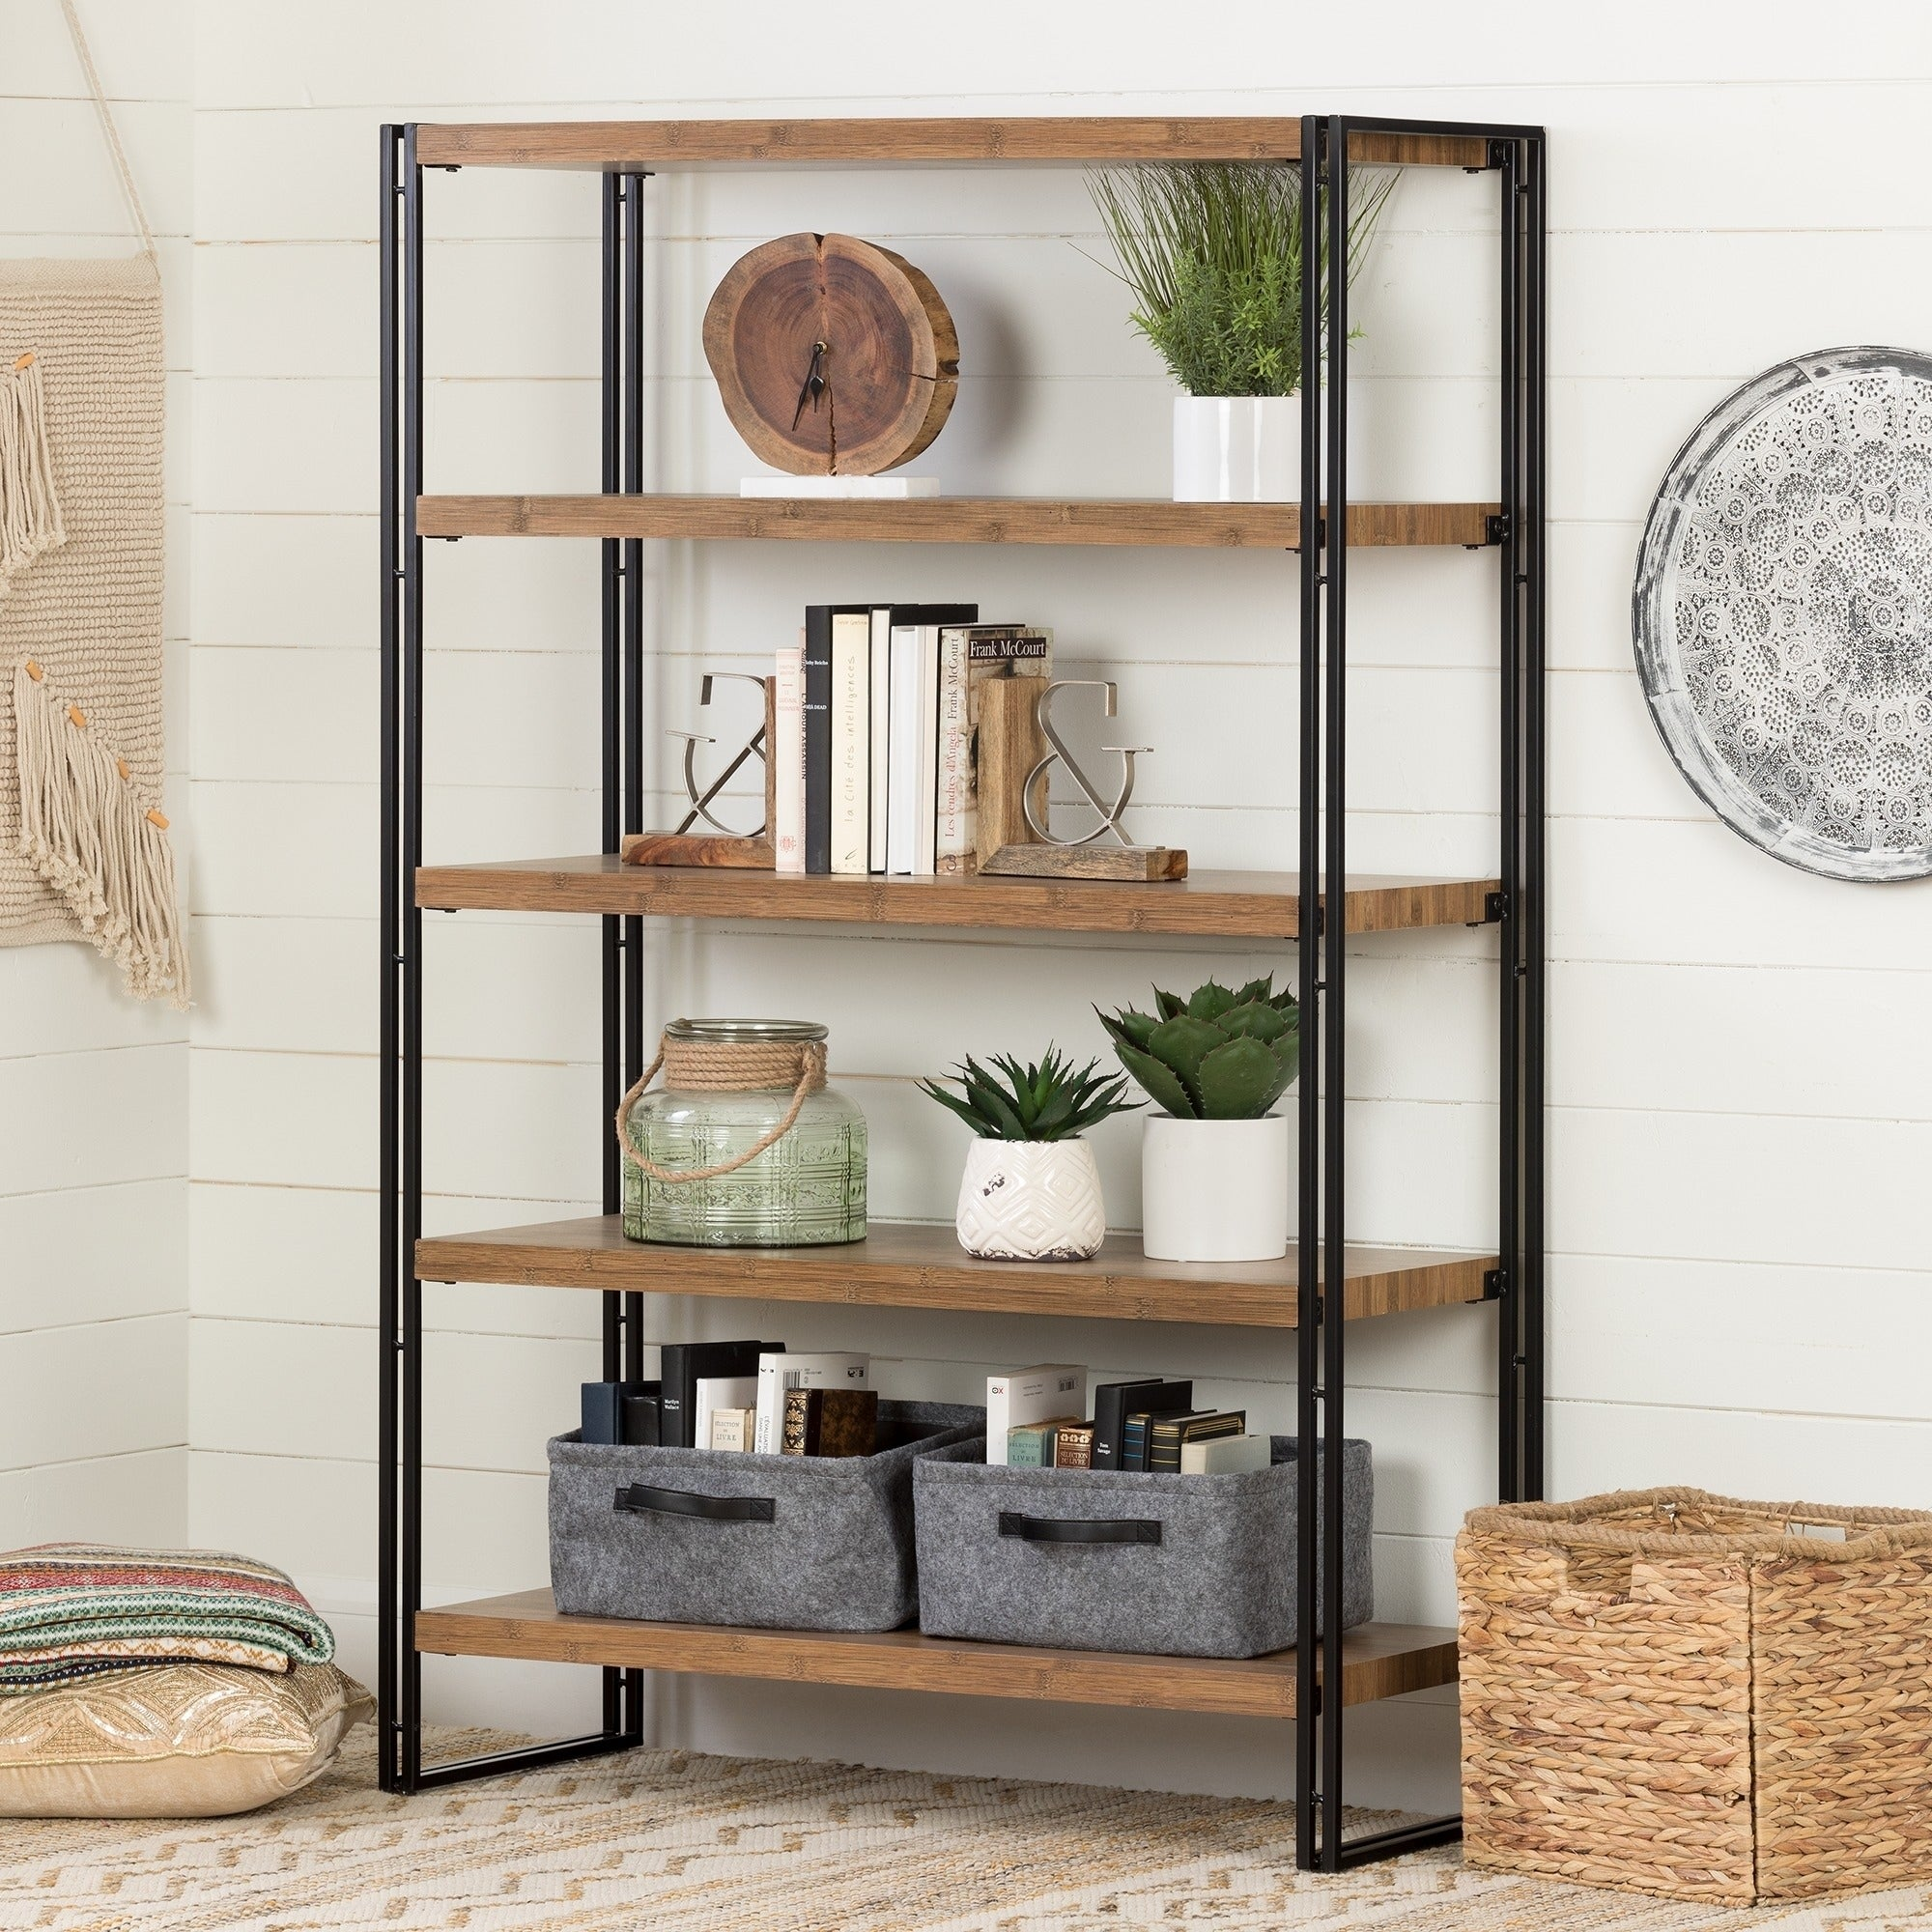 Shelving unit for uncluttering things | Source: overstock.com